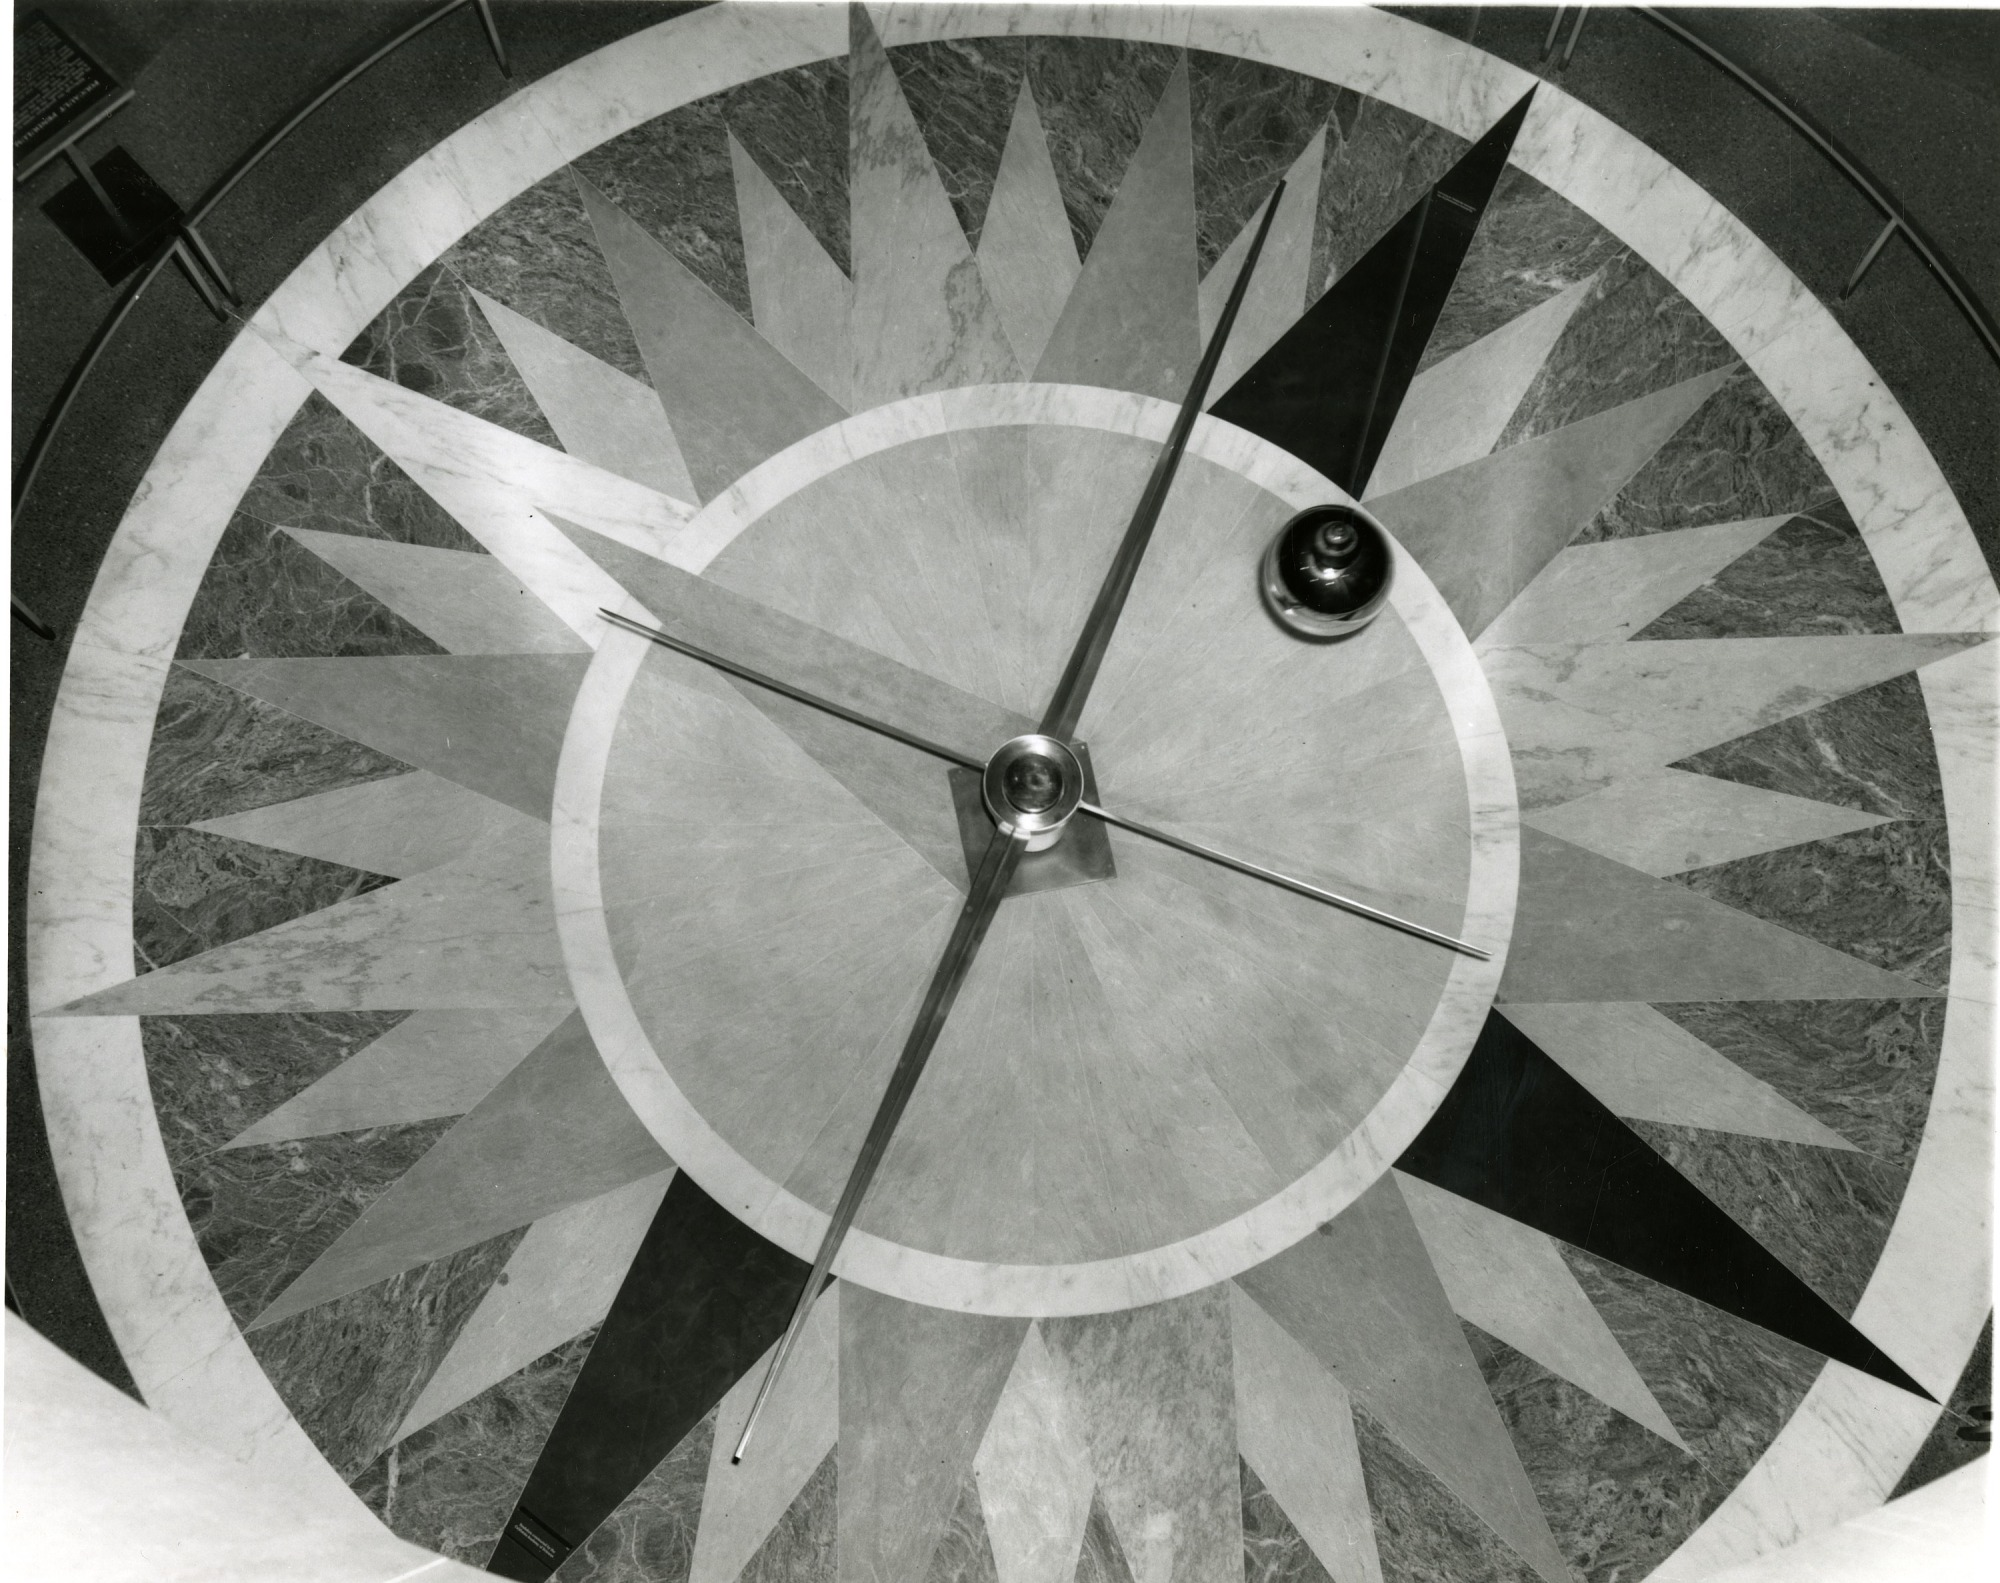 images for Looking Down on the Foucault Pendulum